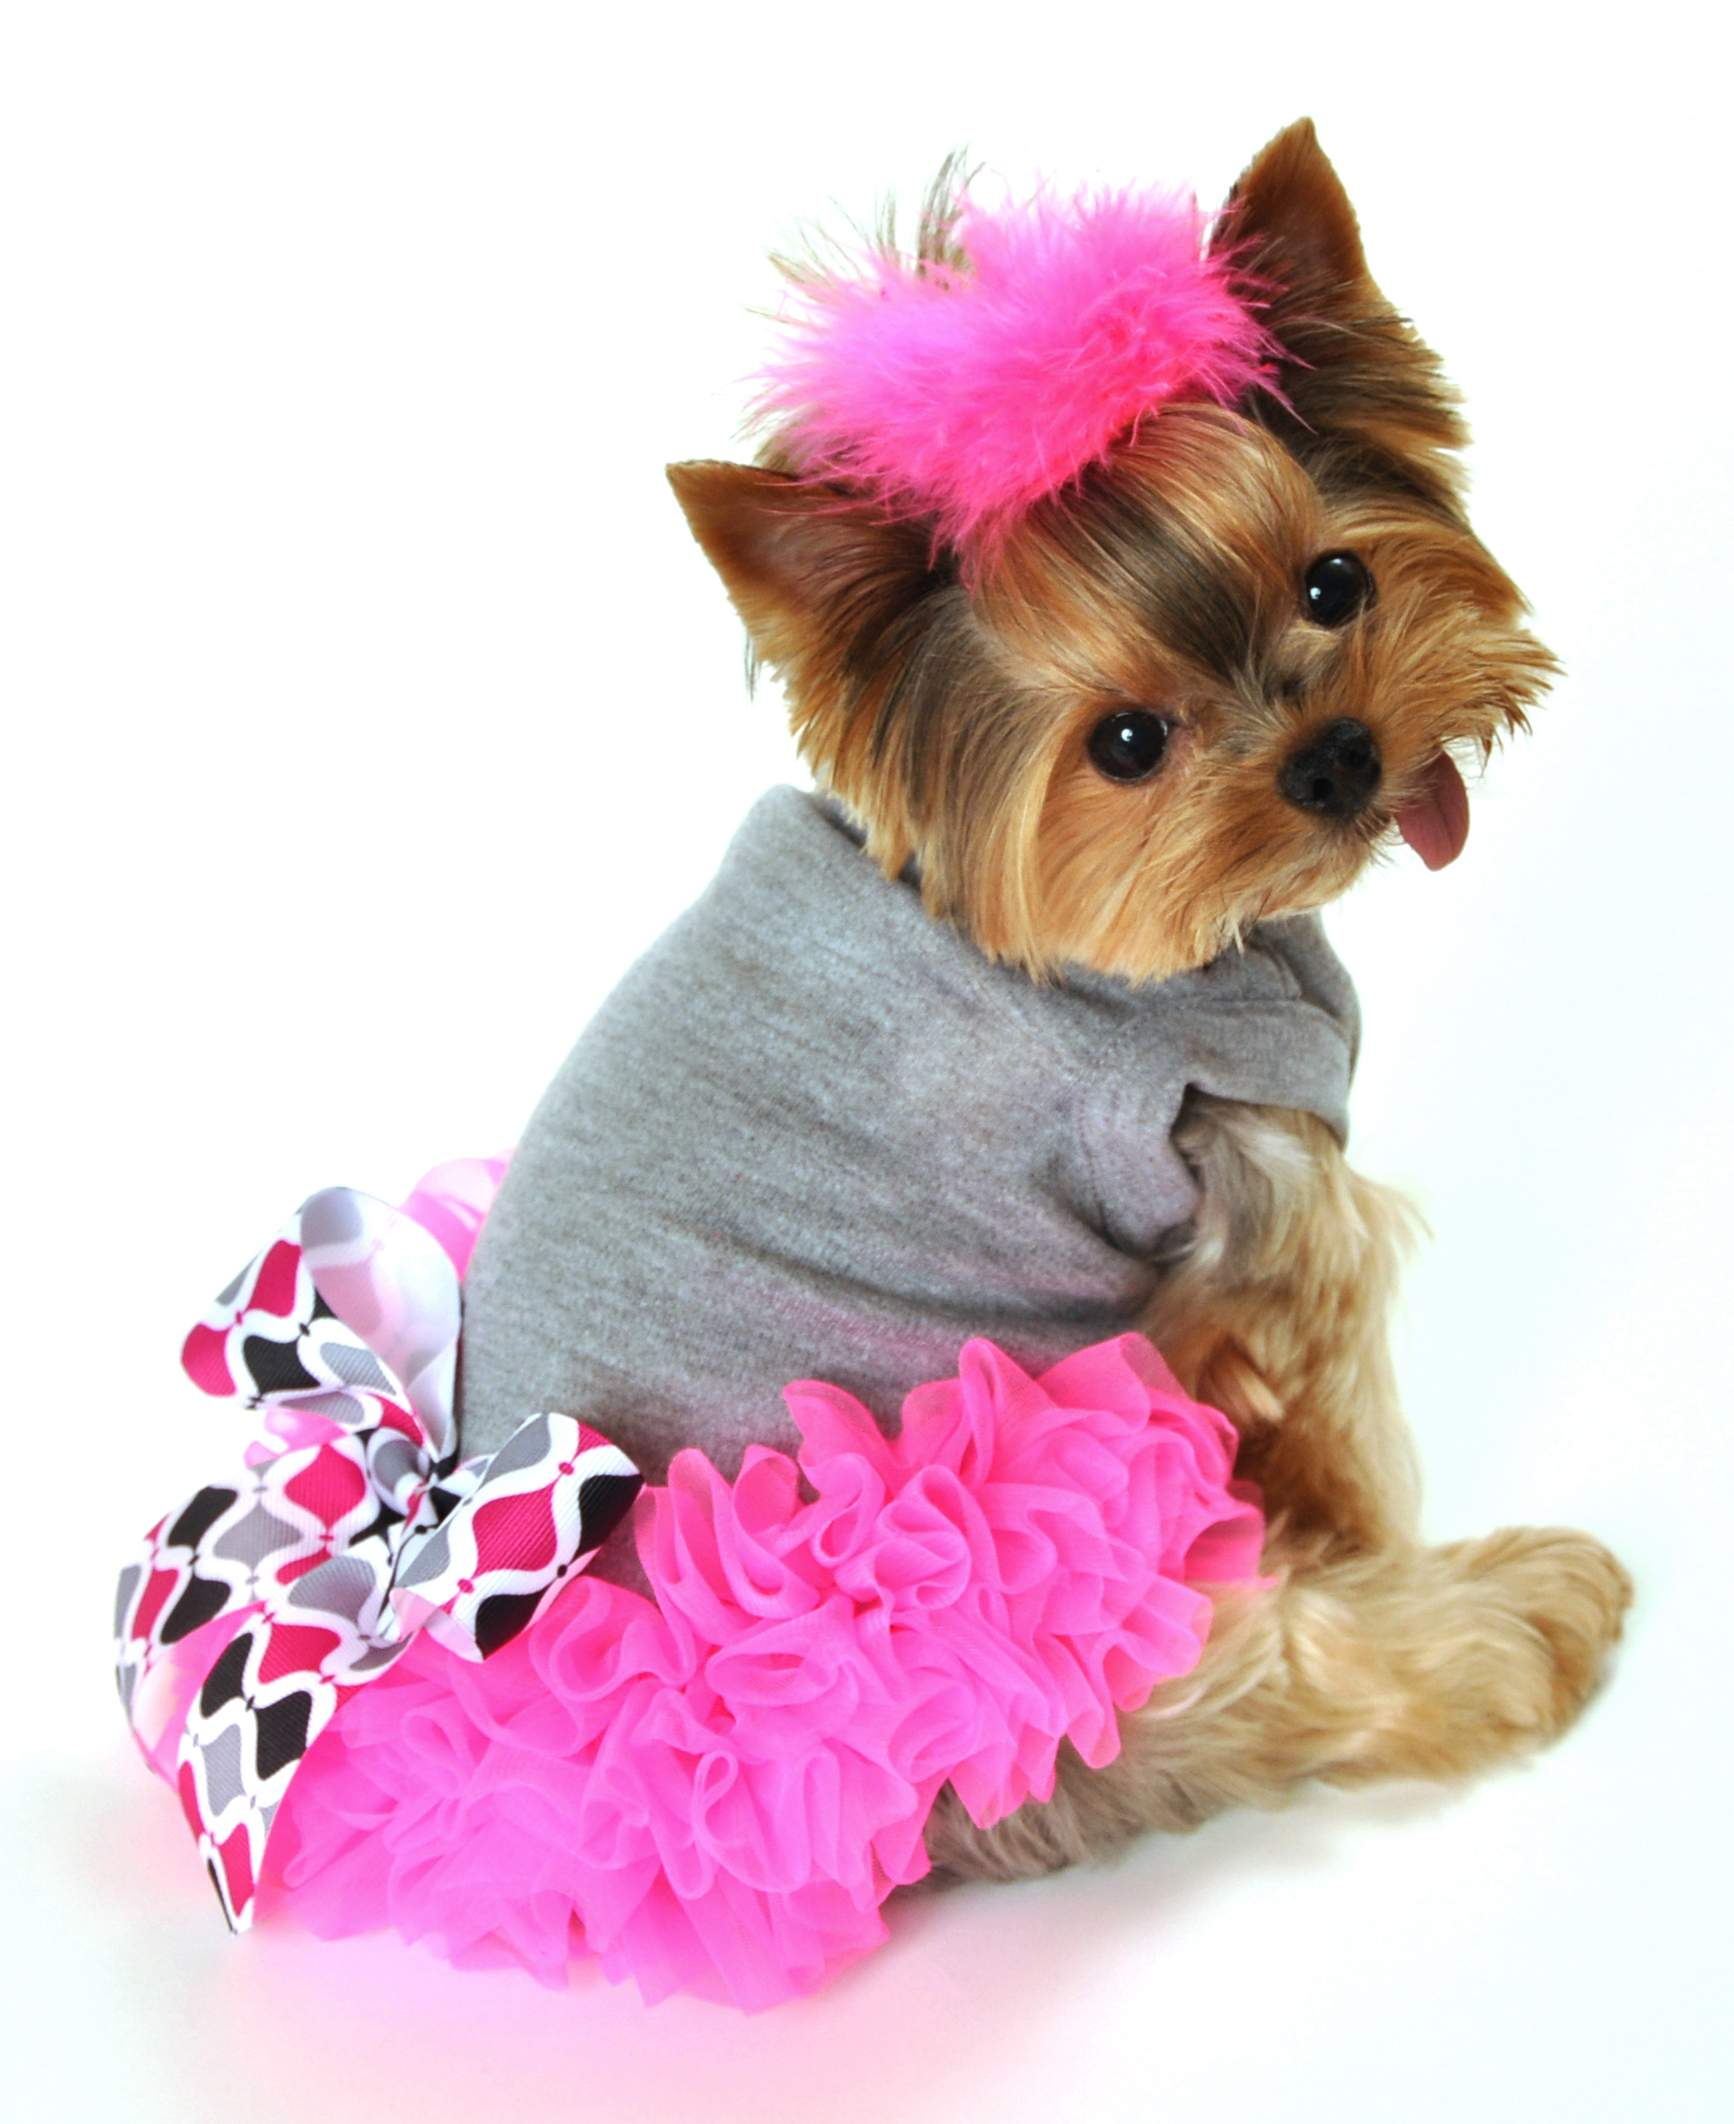 Dress A Dog photo - 1